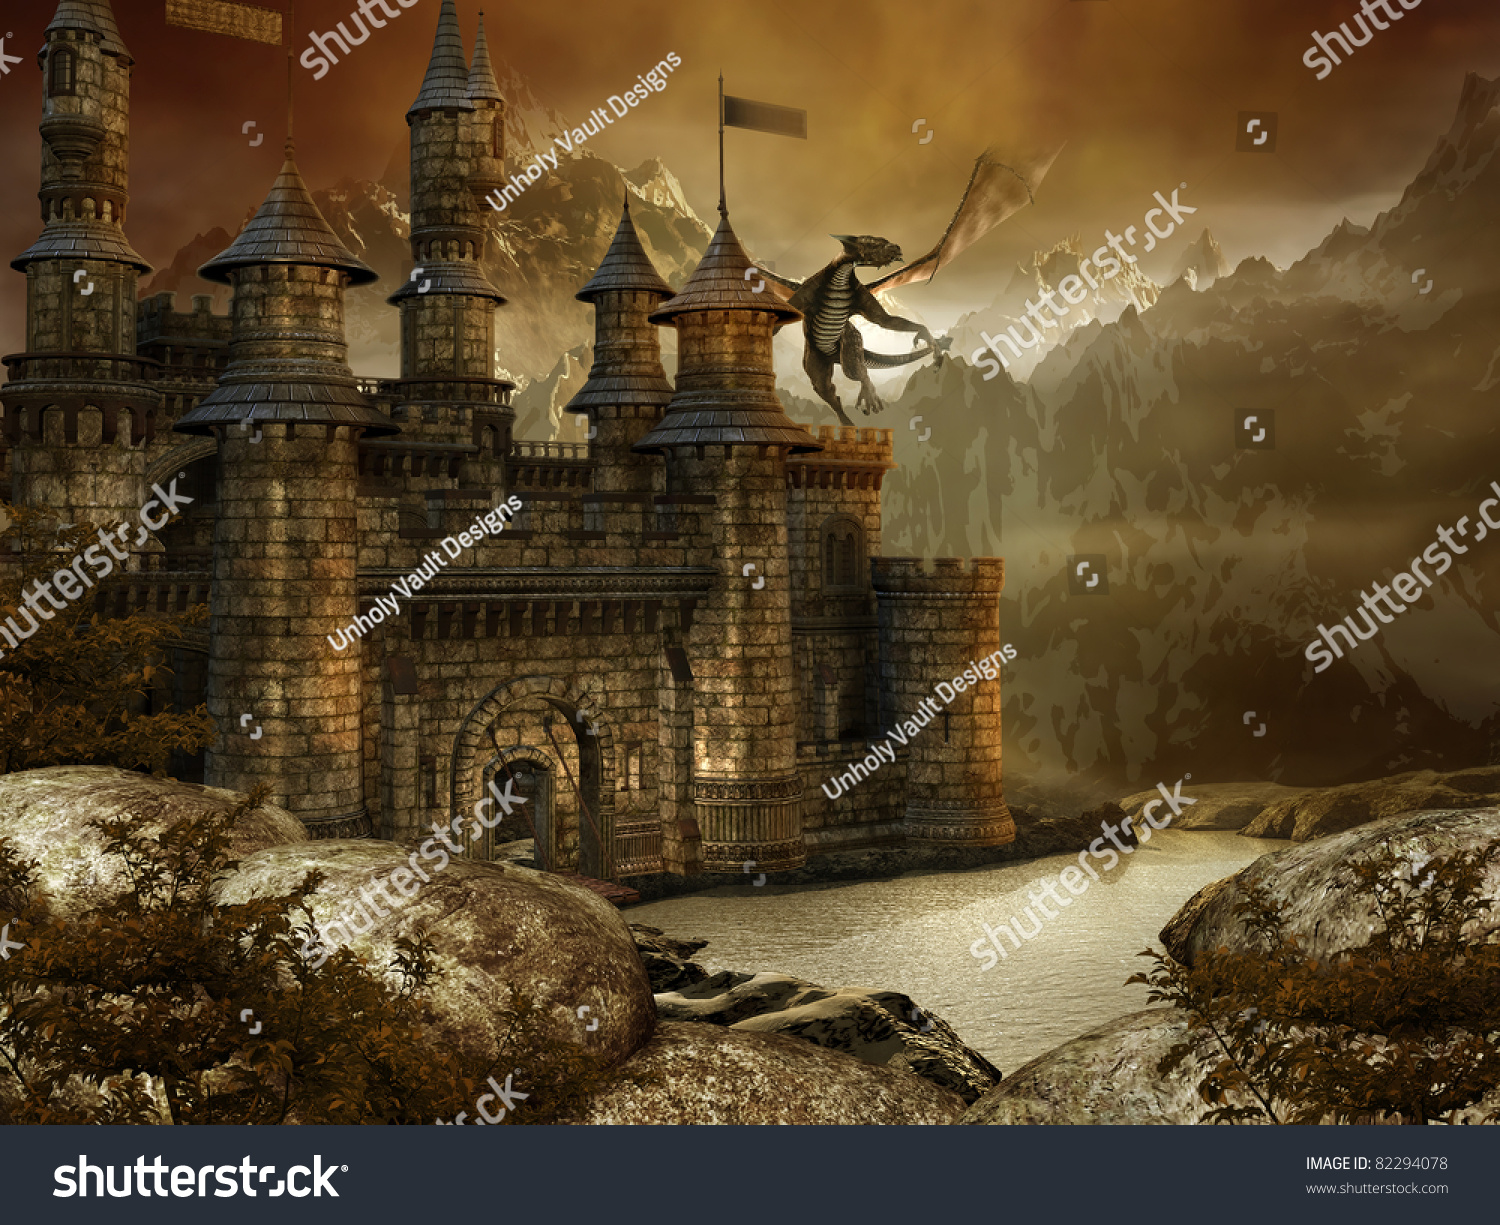 Fantasy Landscape With A Fairytale Castle And A Dragon